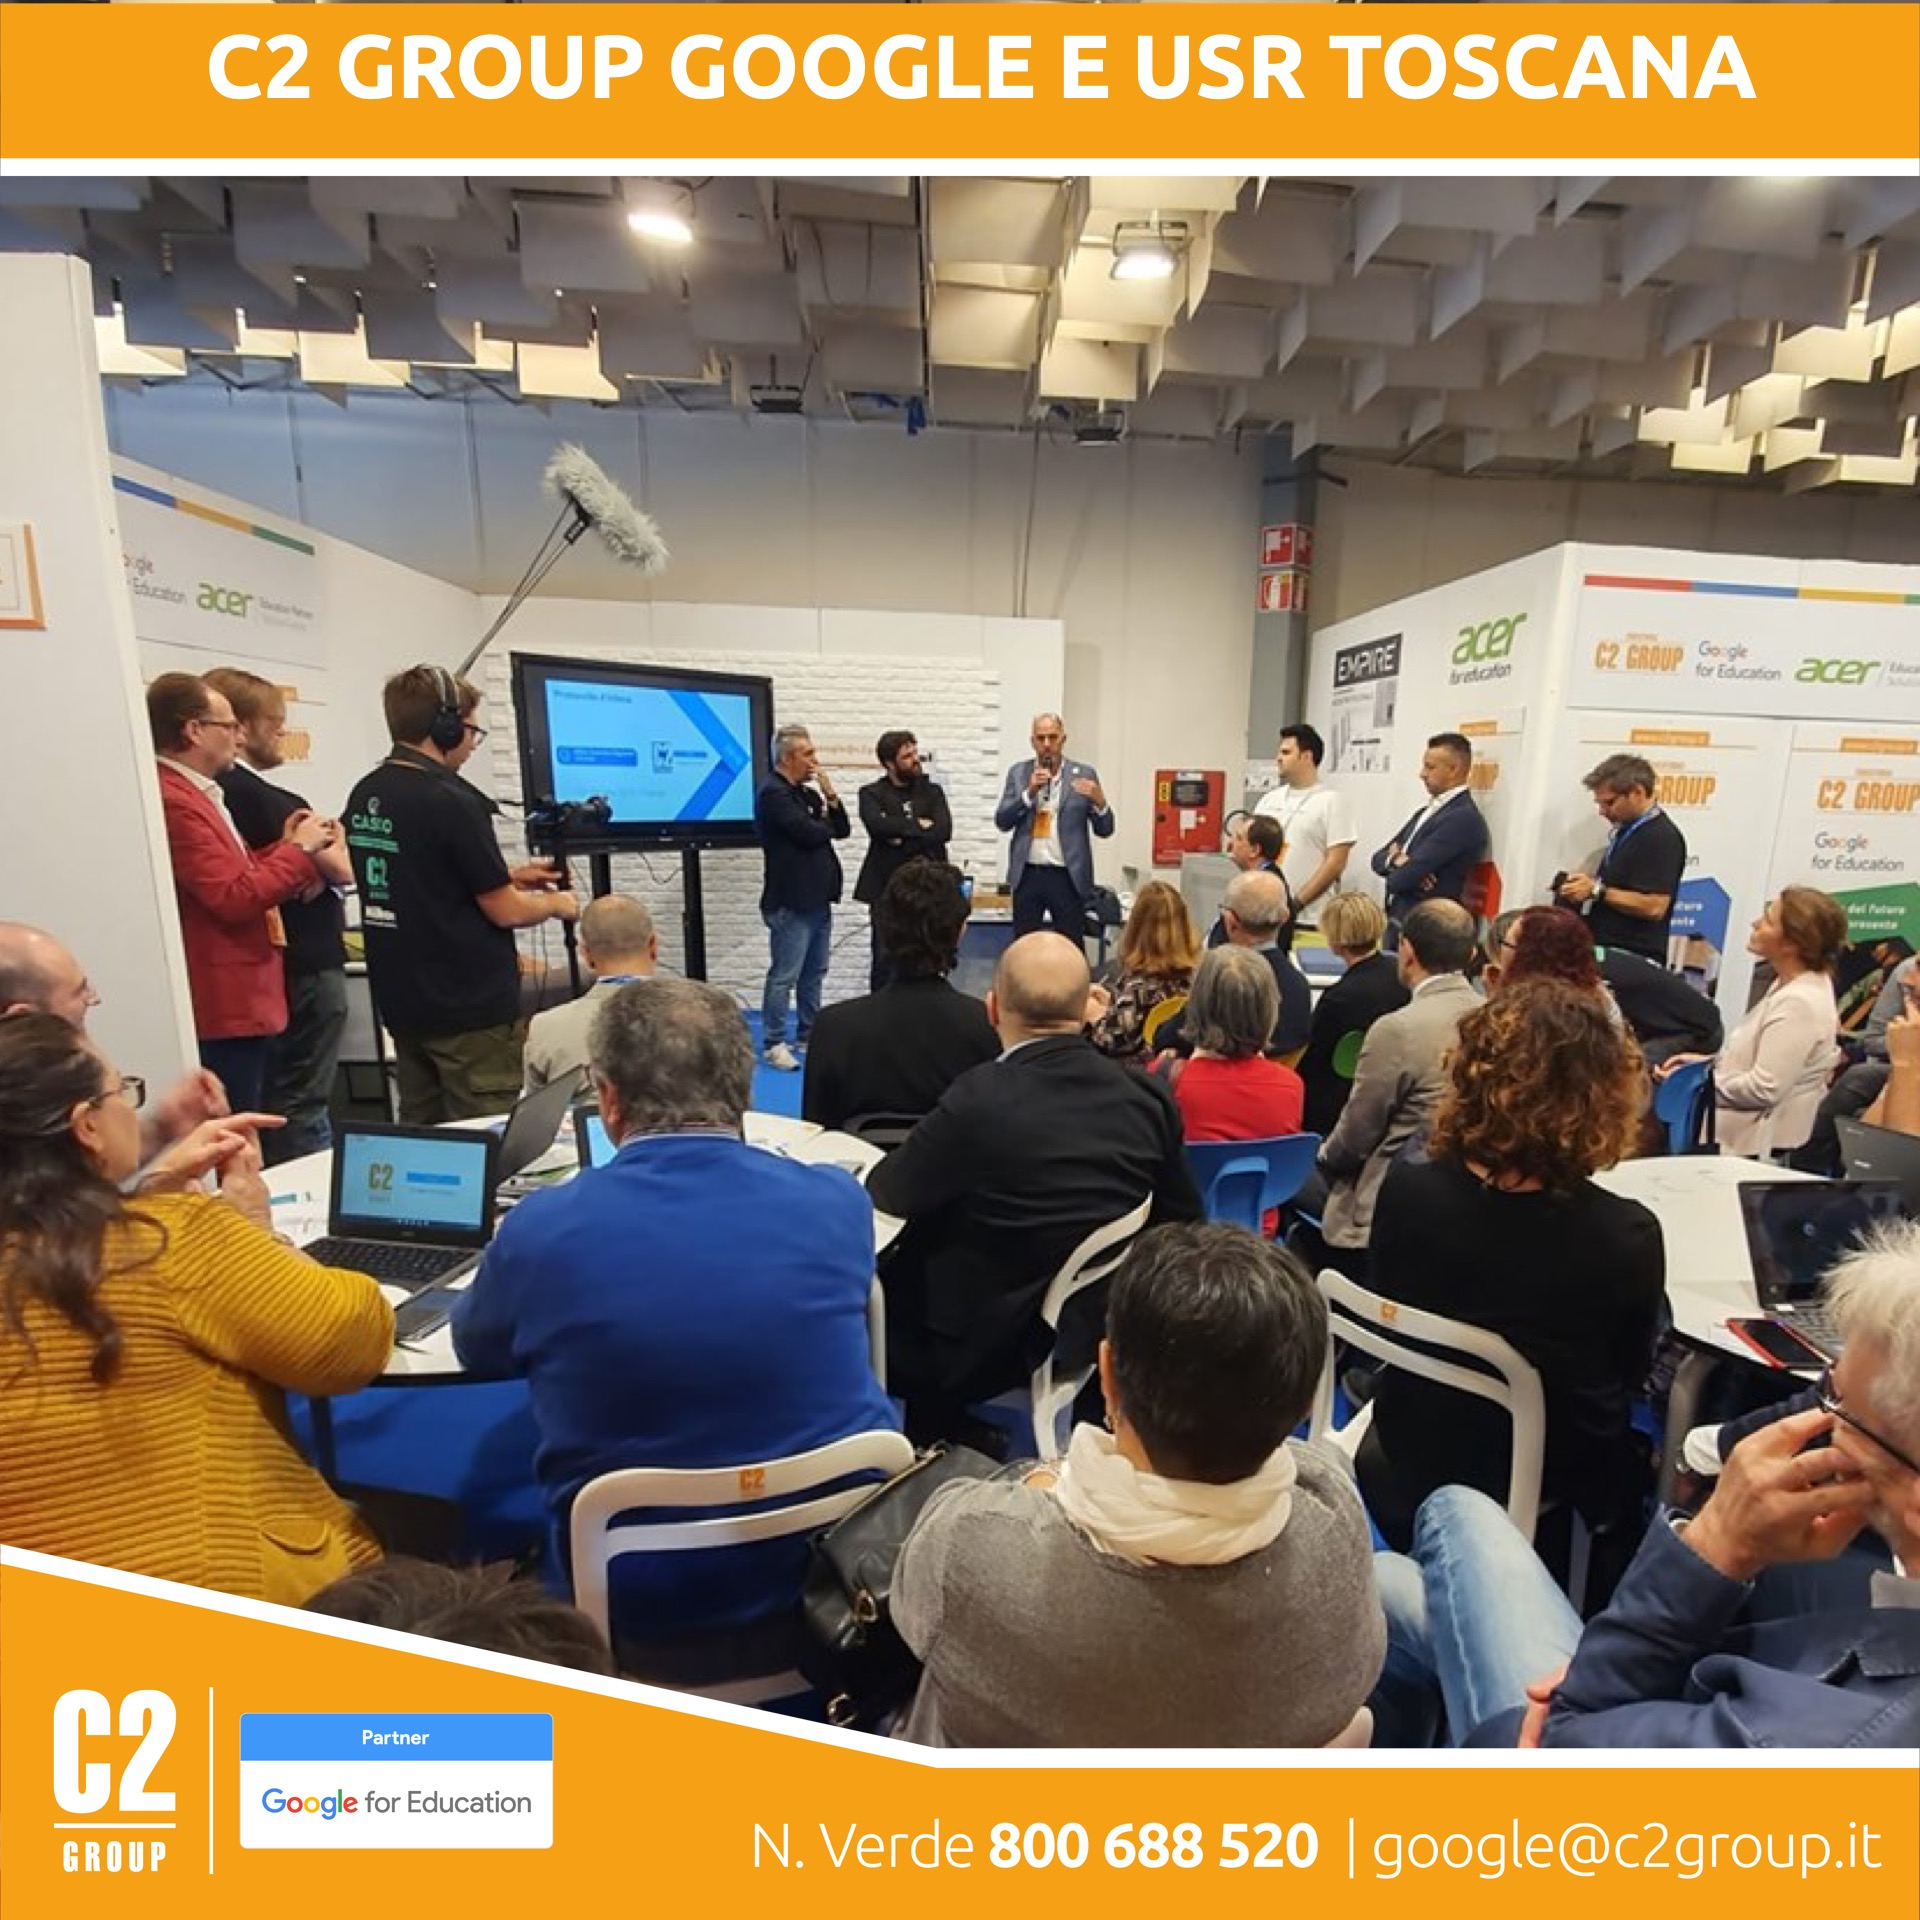 C2 GROUP Google USRToscana